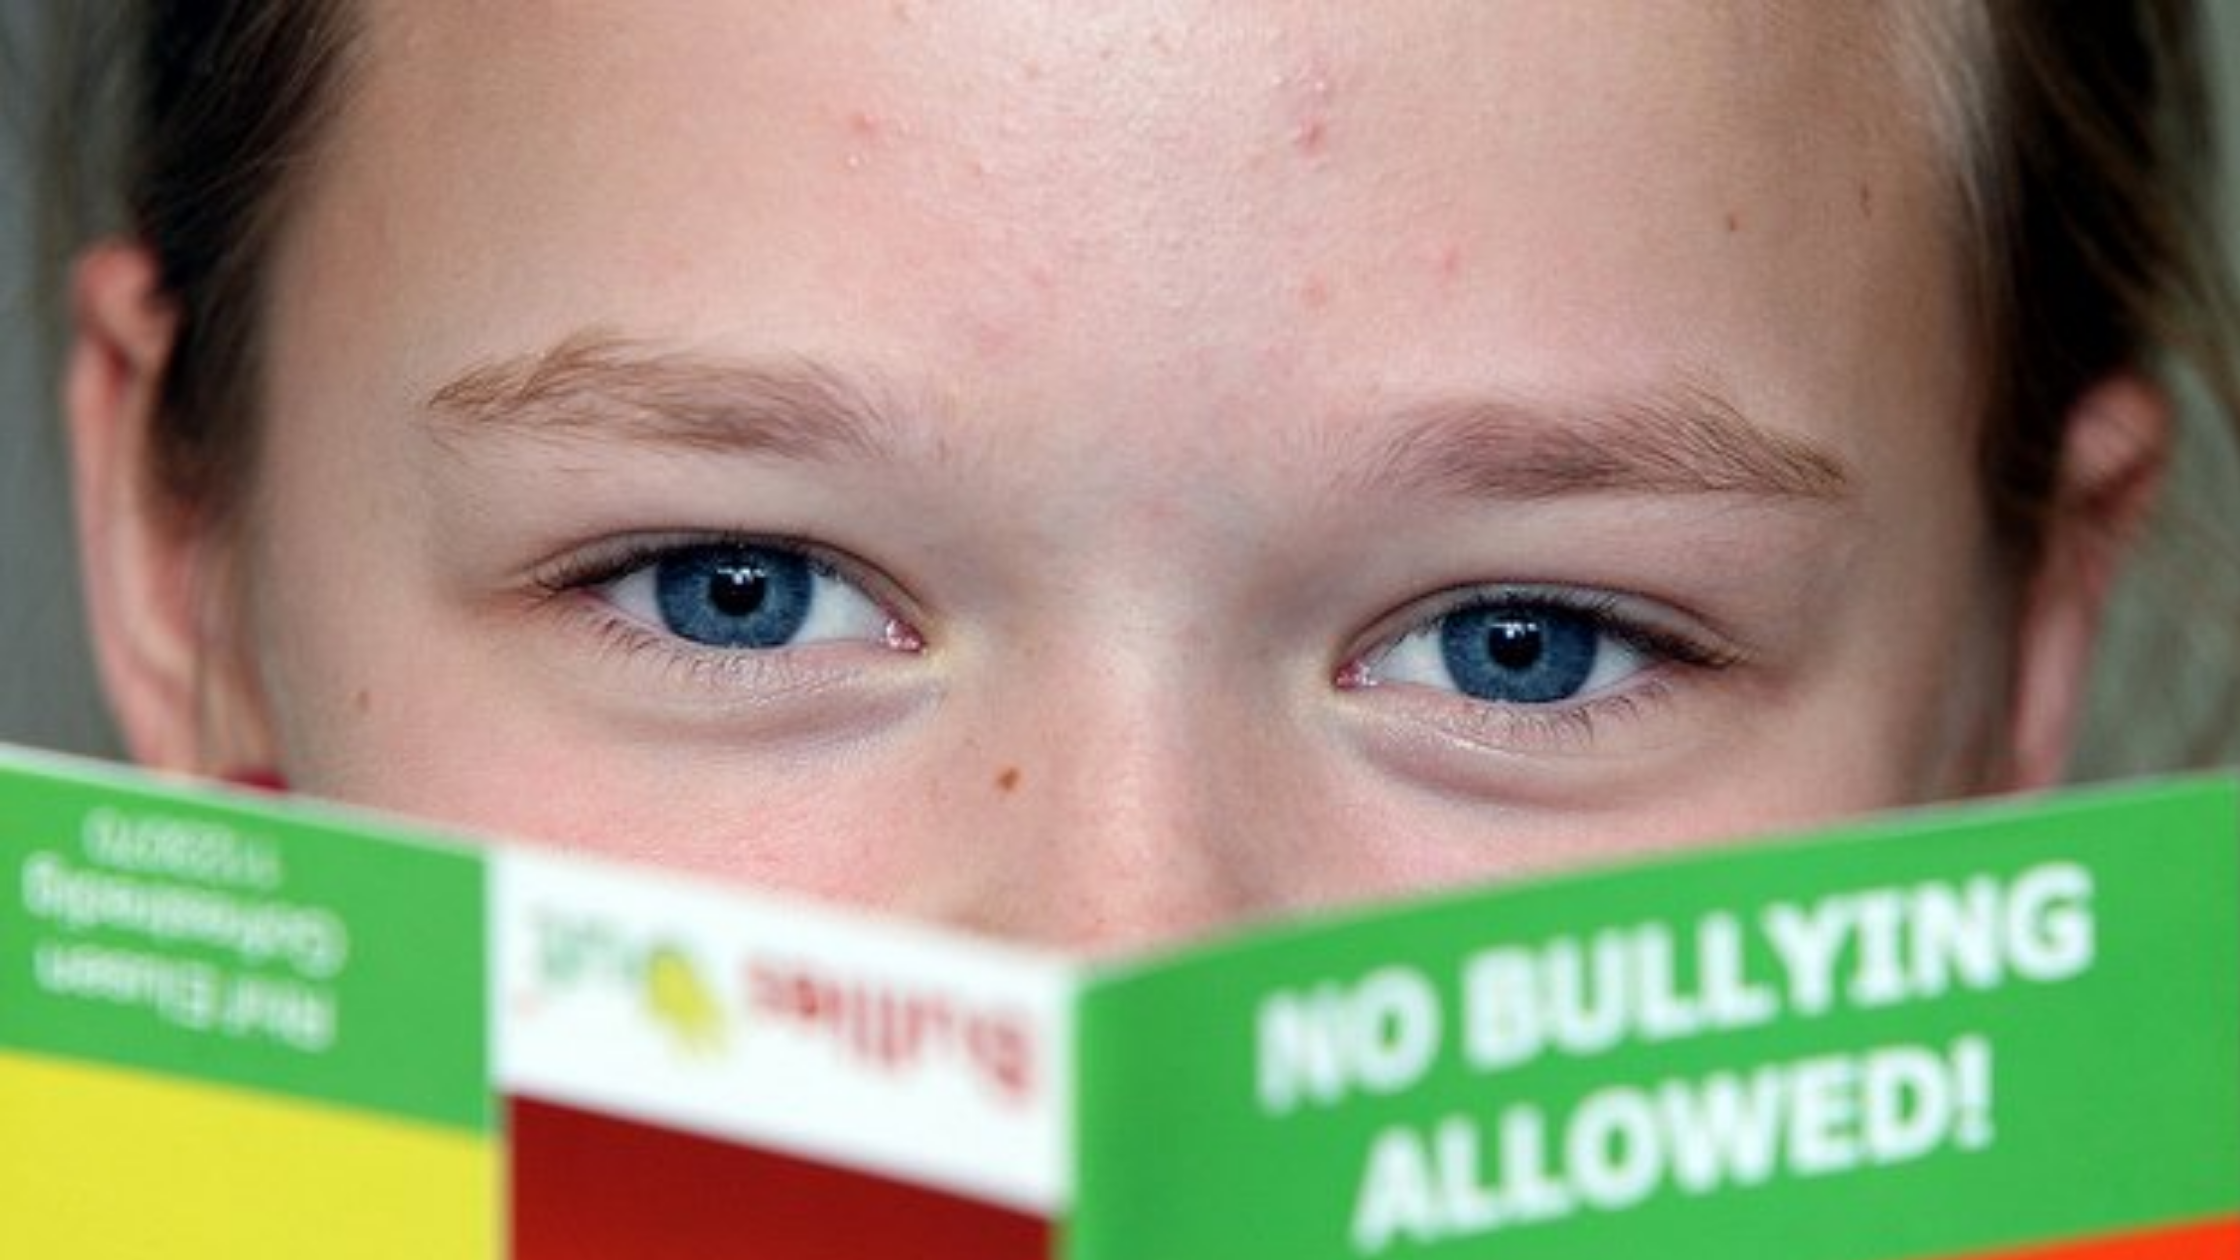 New Controversial Study Linking Bullying With Genes